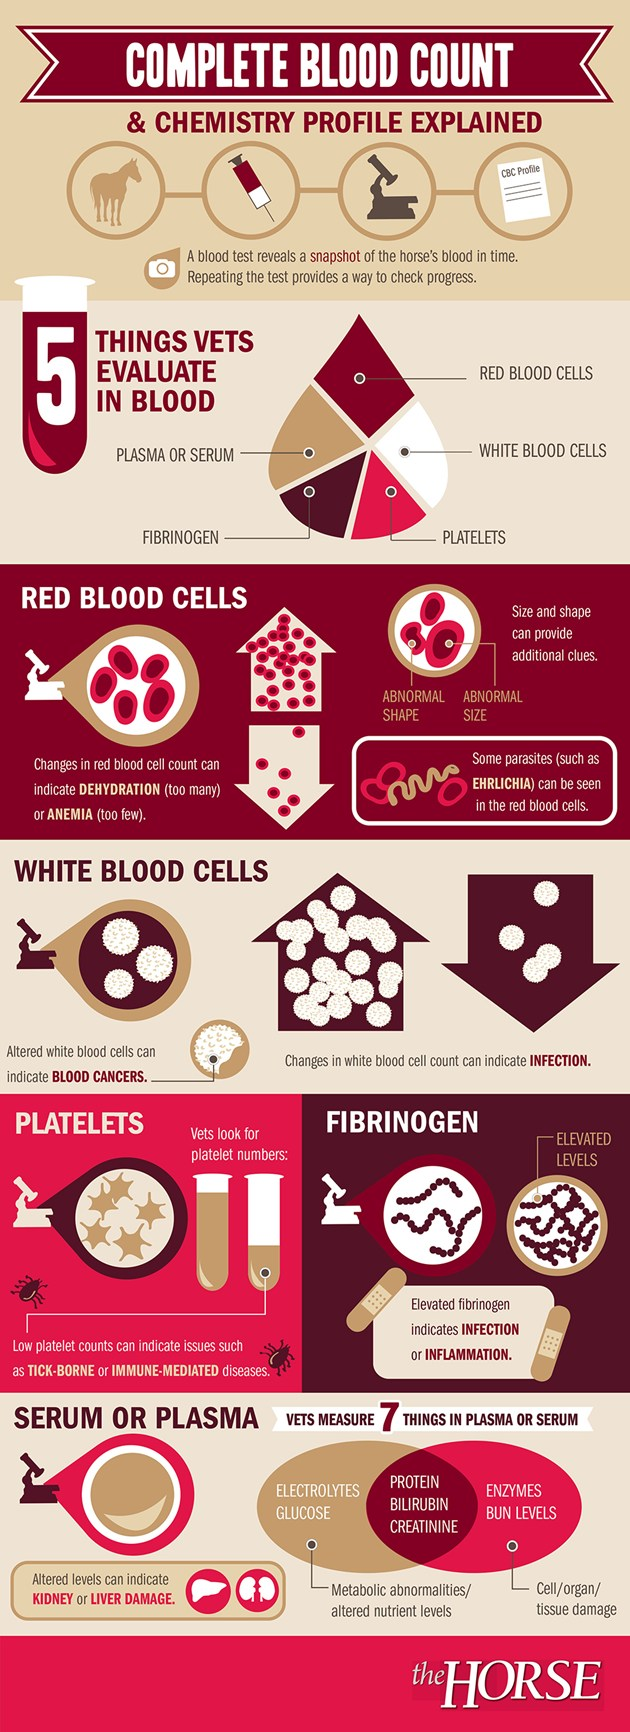 complete-blood-count-infographic2